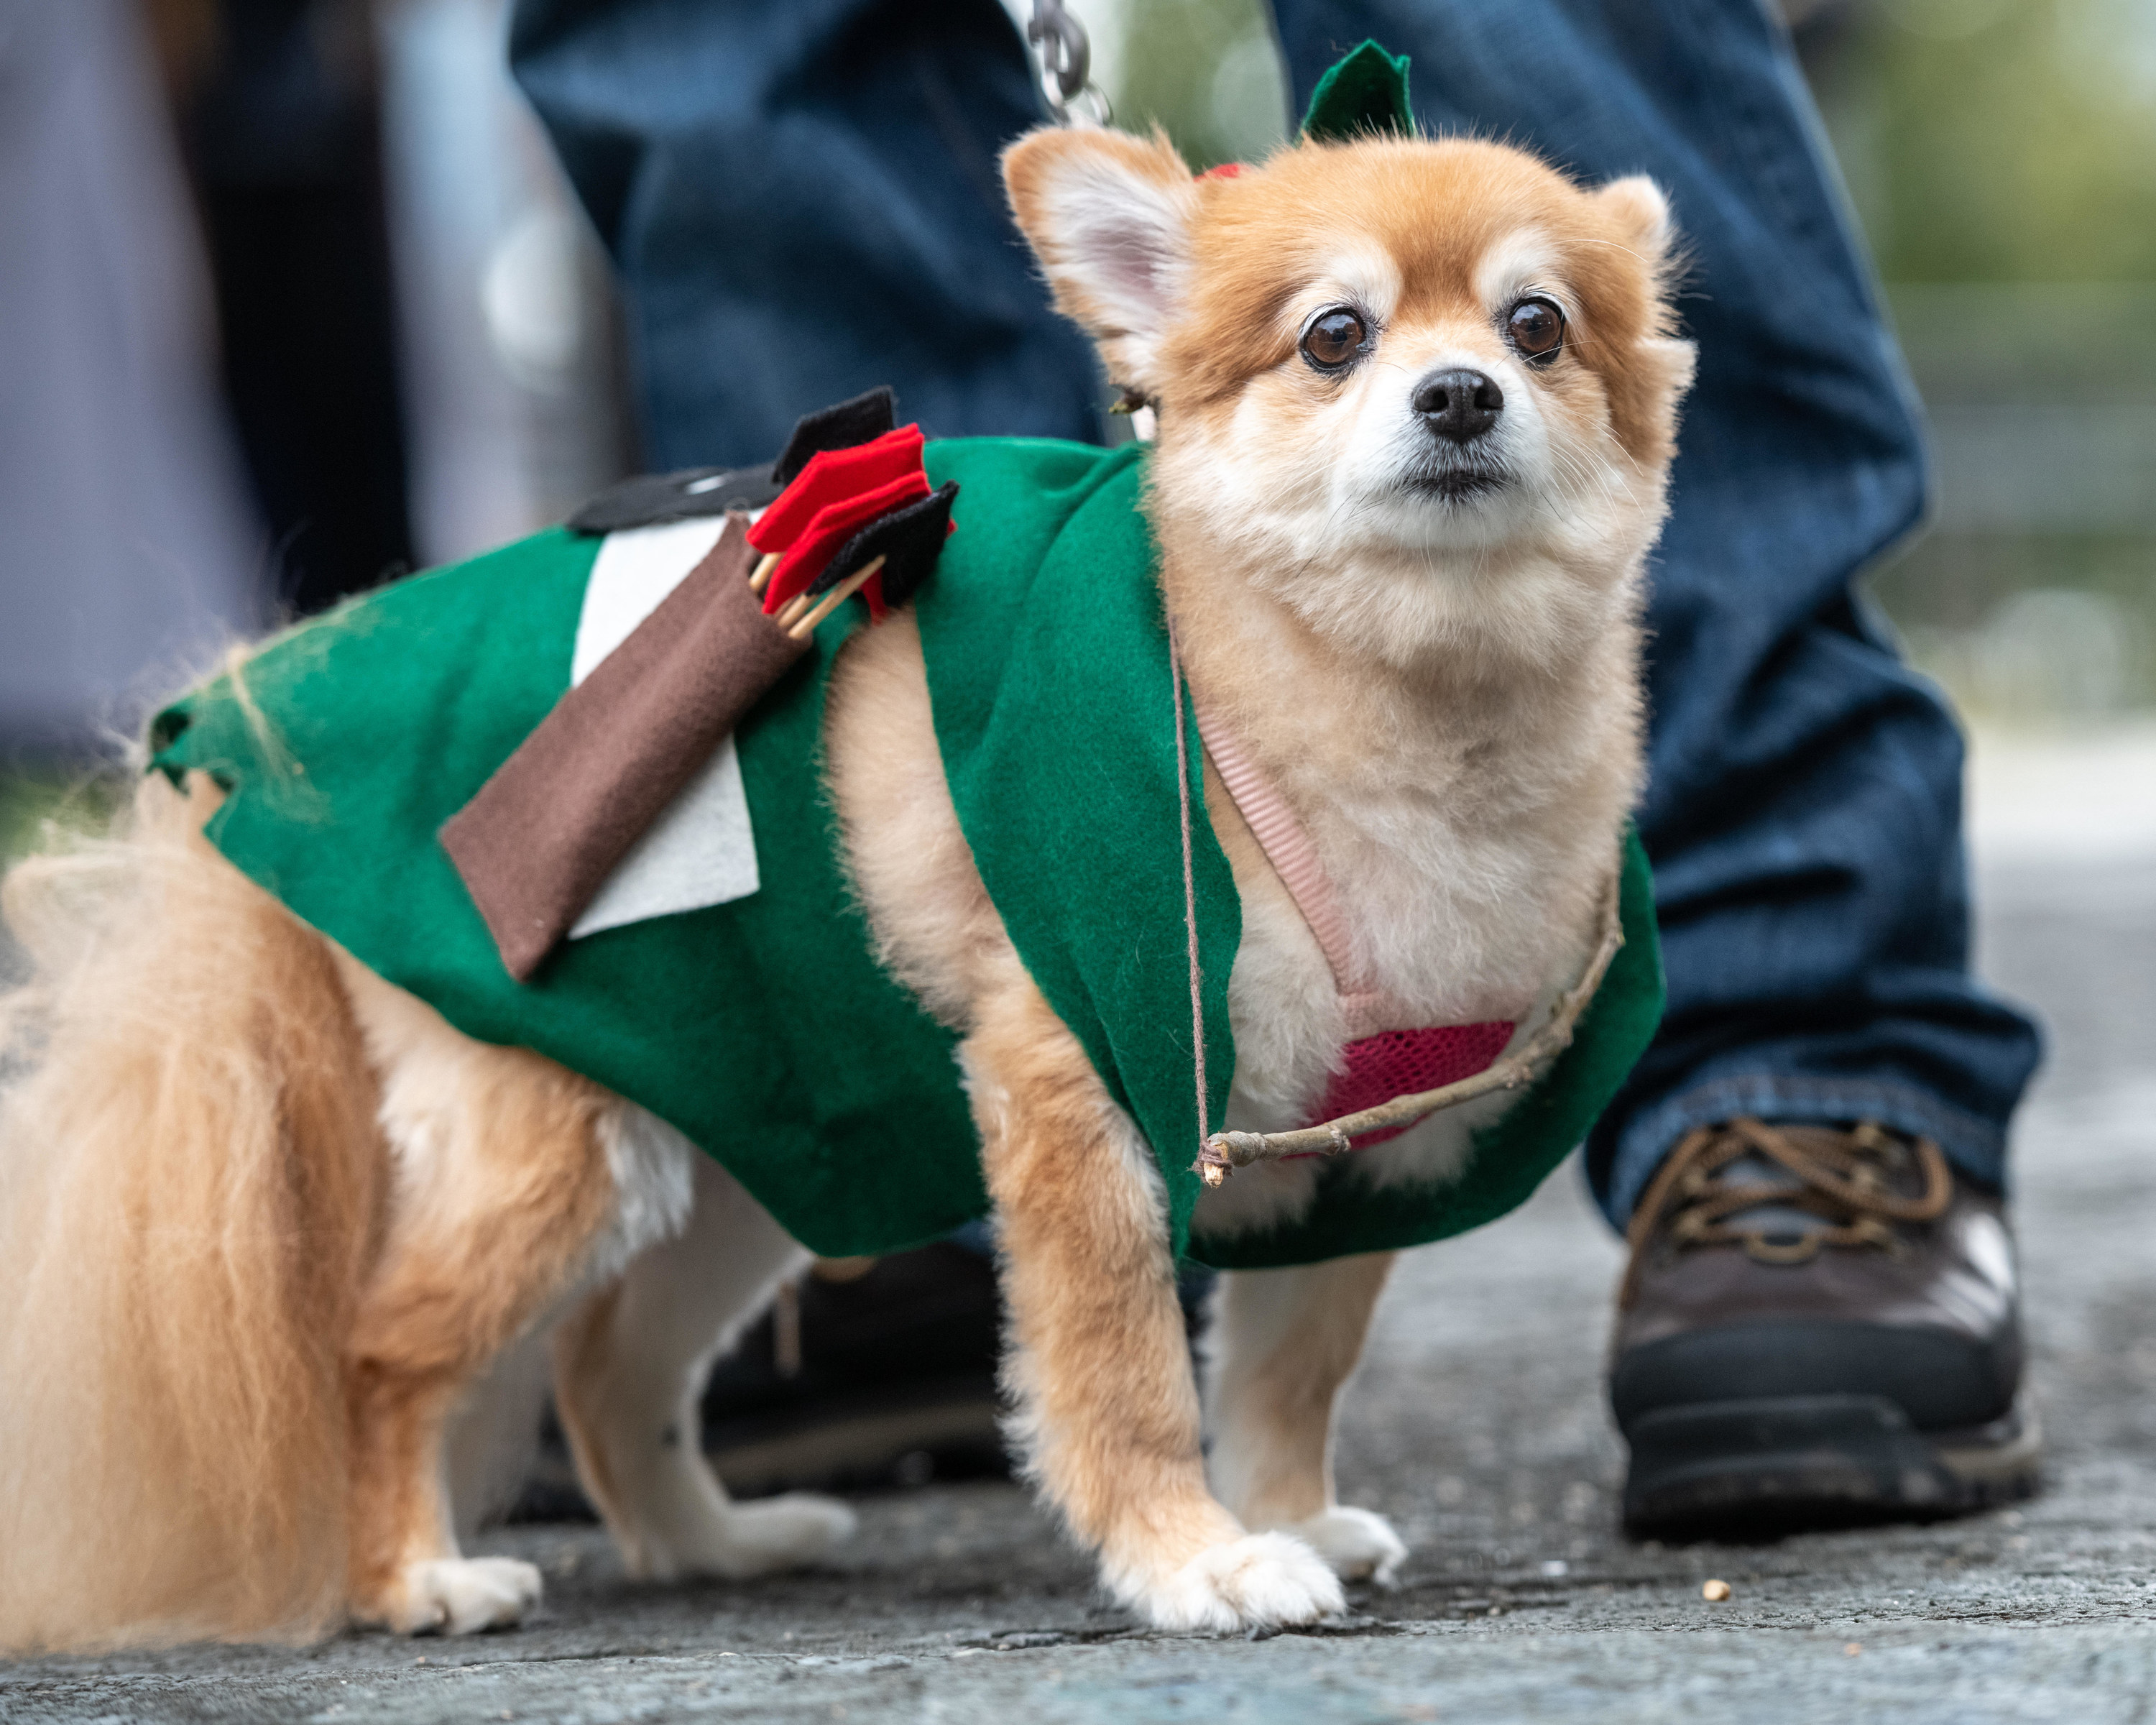 a dog dressed as robin hood in sweater form